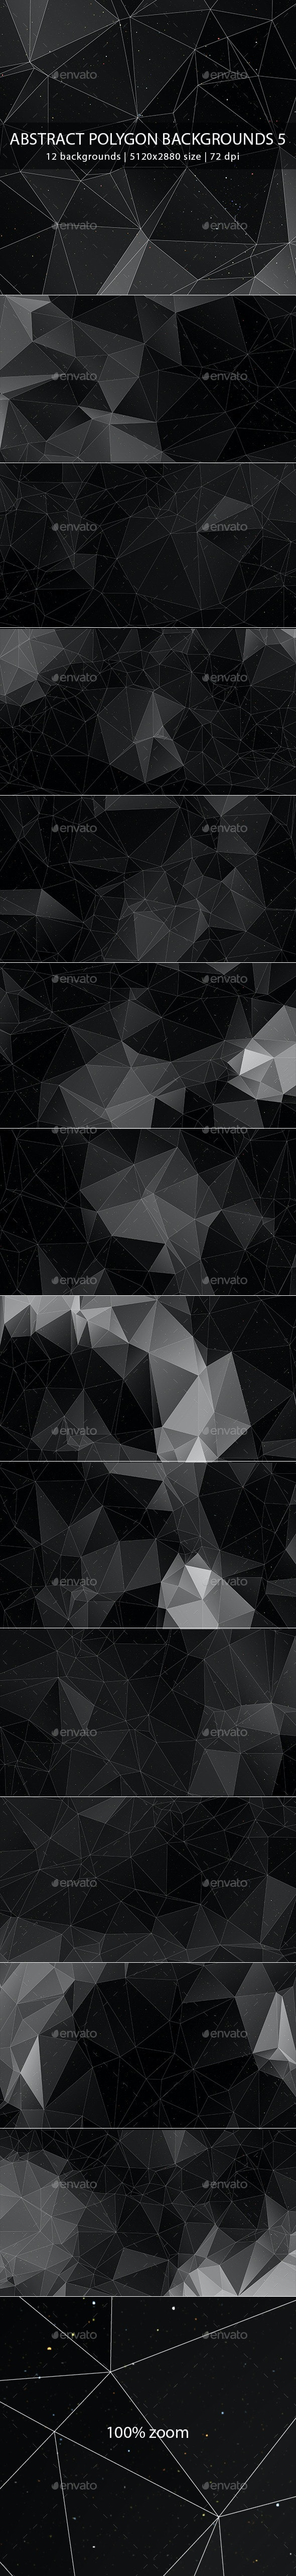 Abstract Polygon Backgrounds 5 - Abstract Backgrounds